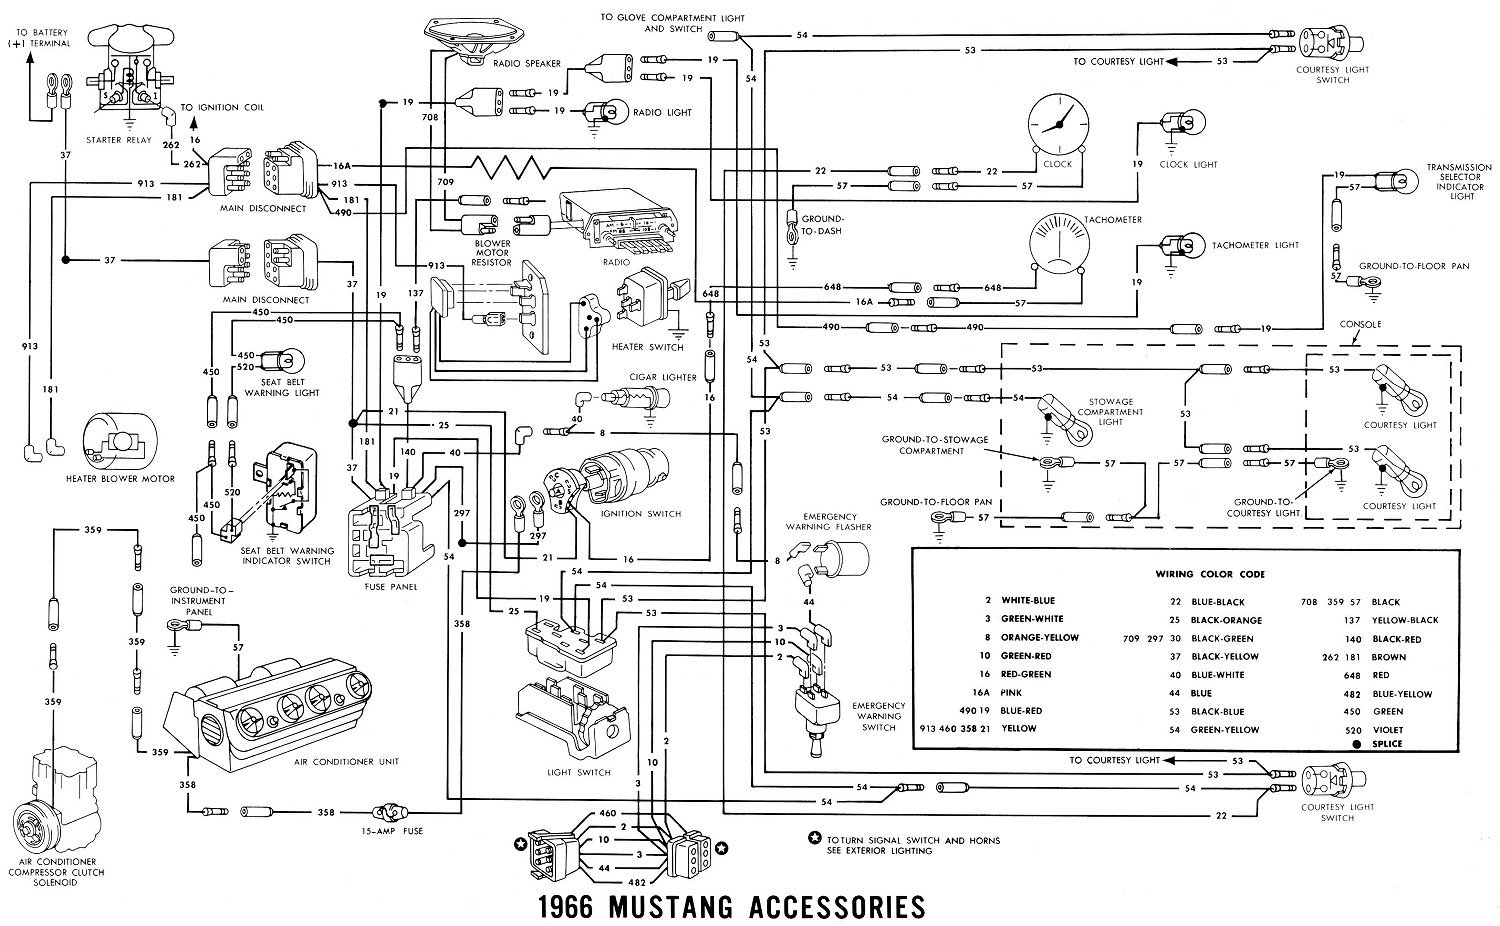 hight resolution of 1966 mustang fuse diagram wiring diagram split 1966 mustang fuse diagram